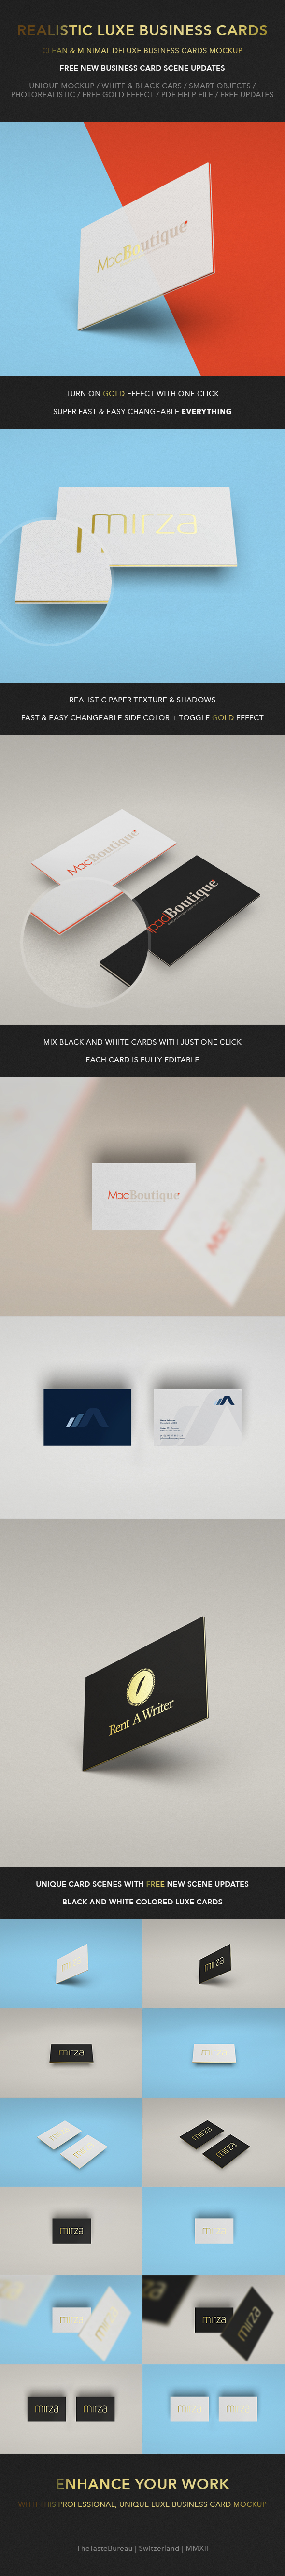 Realistic Luxe Business Card Mock-Up on Behance